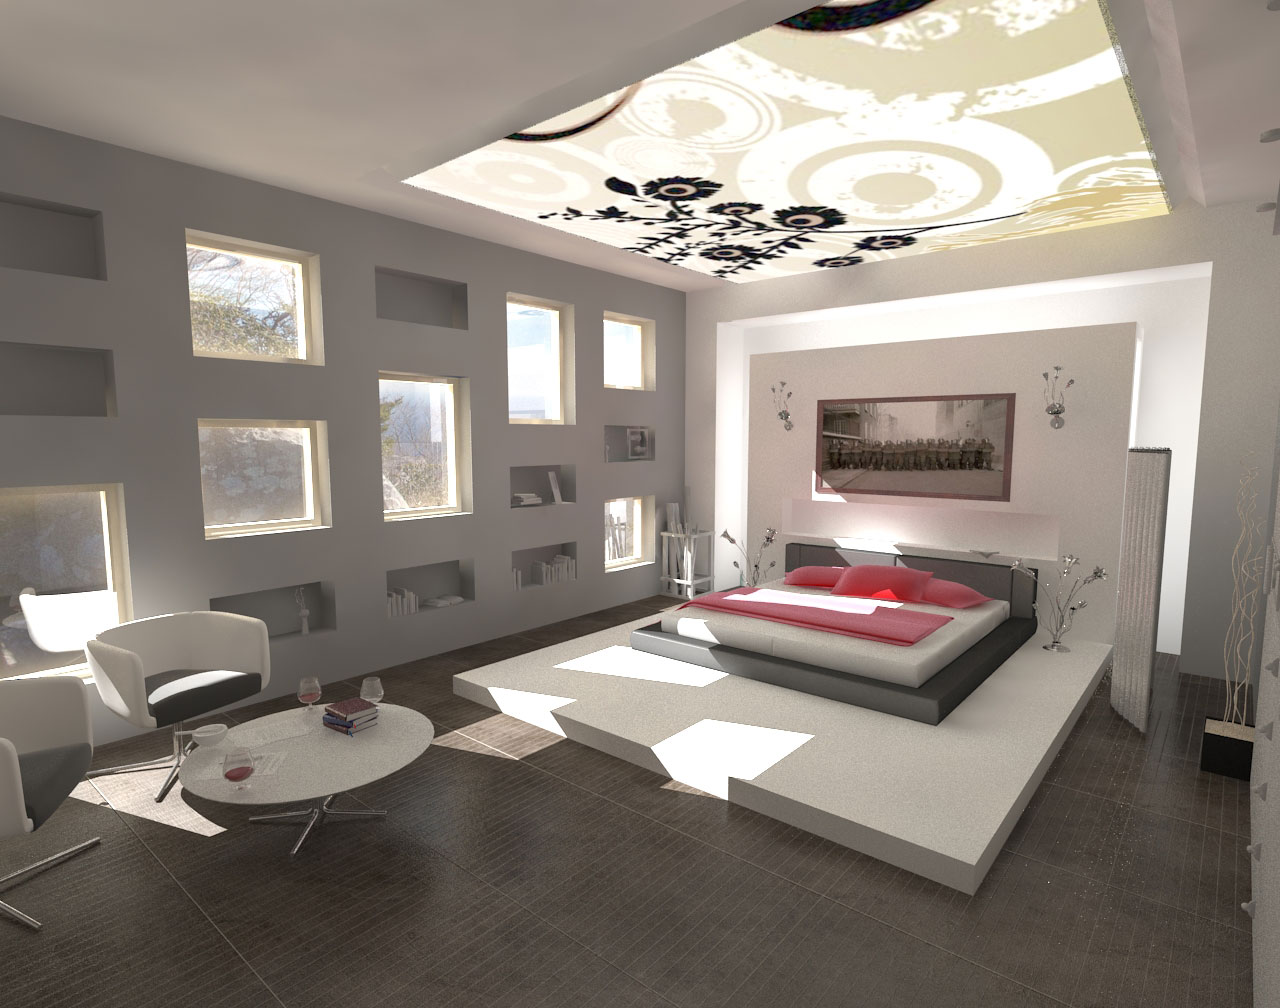 Decorations minimalist design modern bedroom interior for Minimalist bedroom design